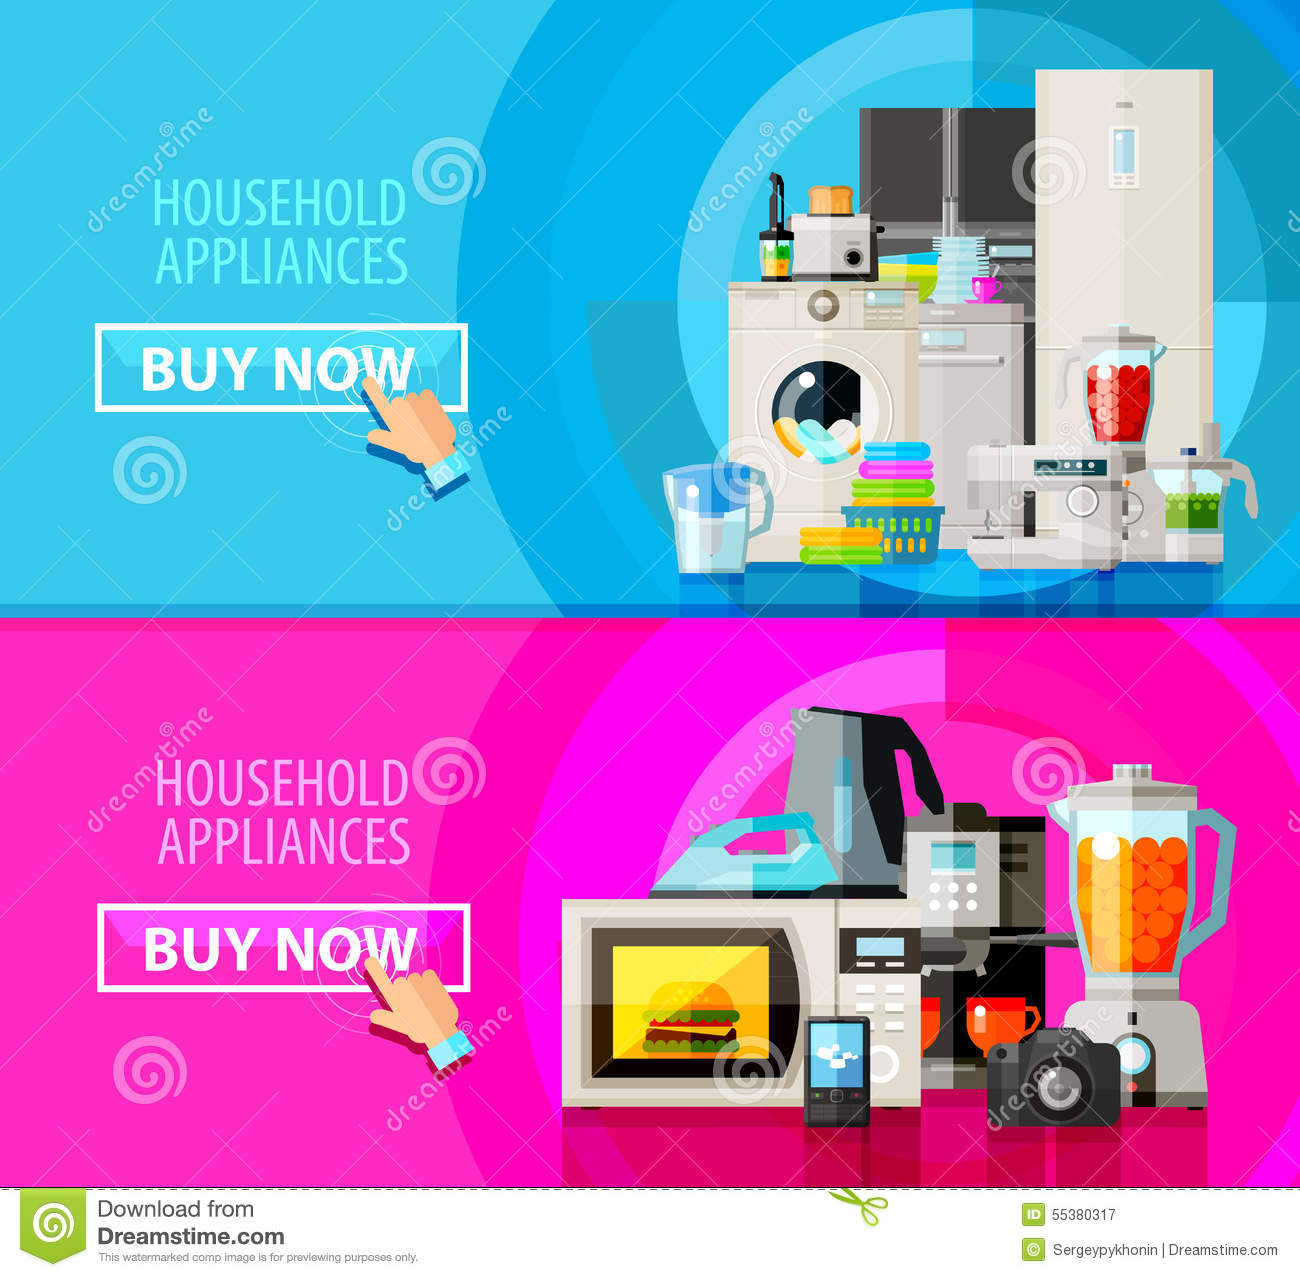 Appliances vector logo design template electrical stock for Household appliances design